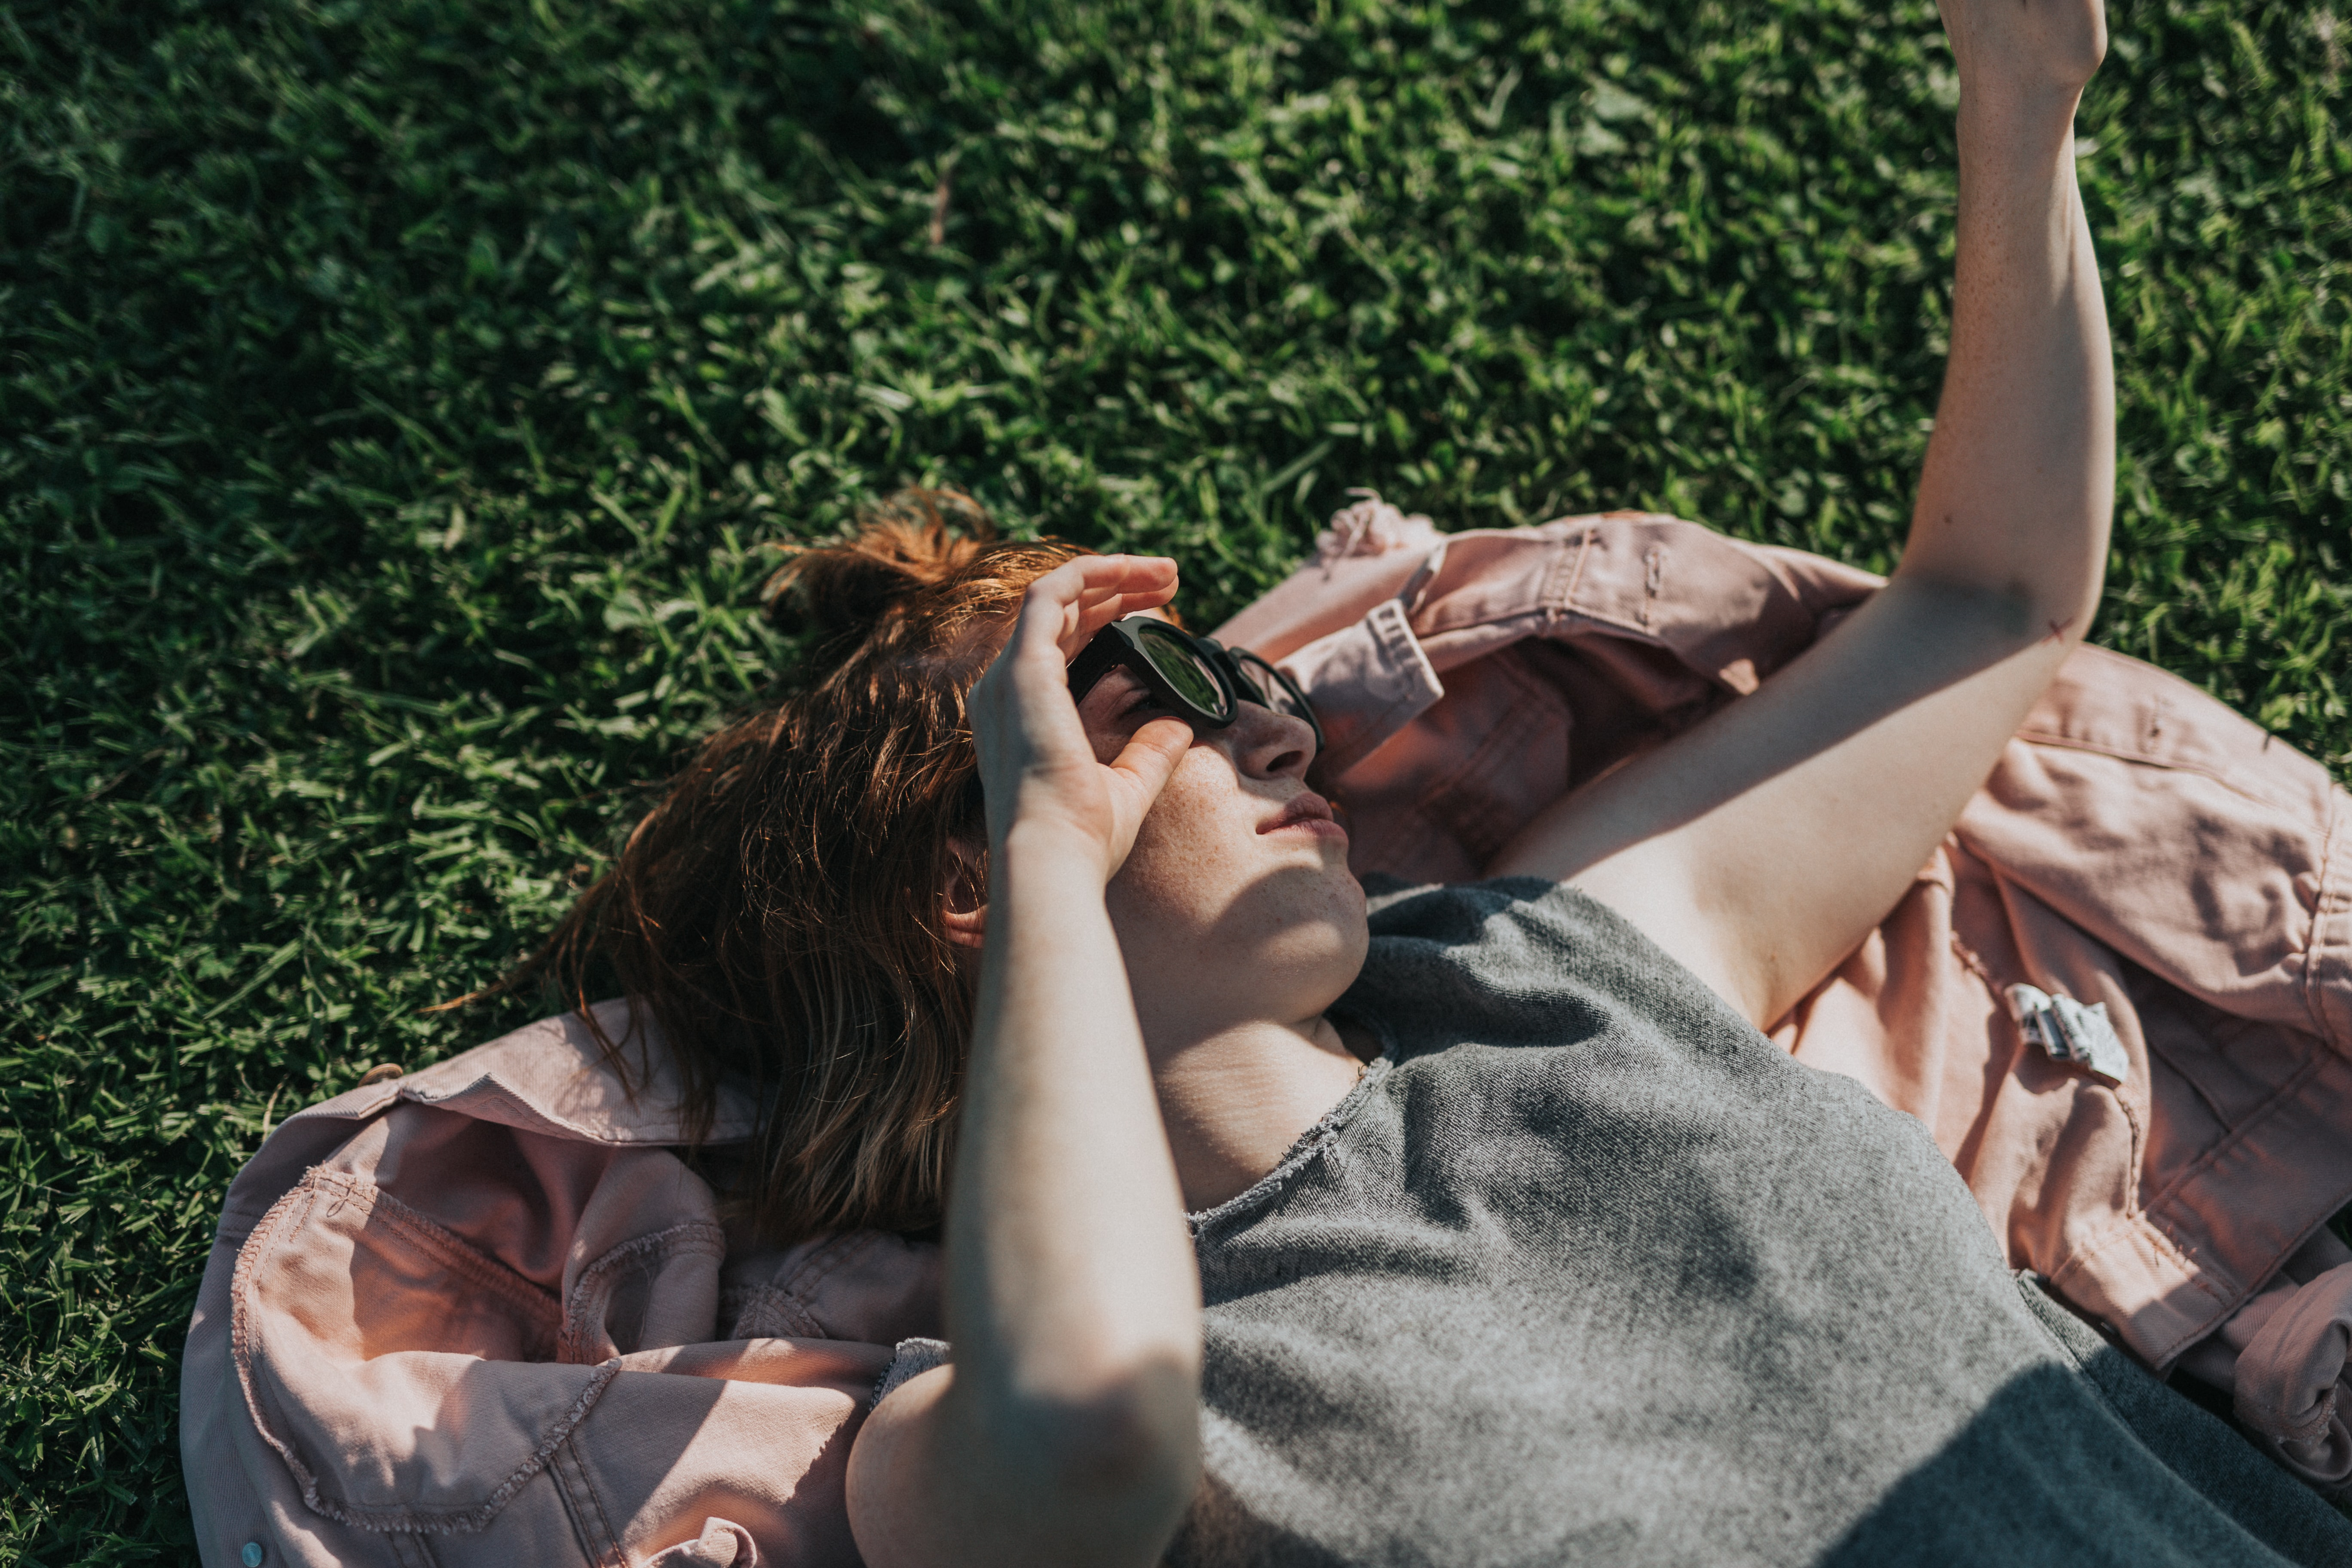 woman lay on grass during daytime